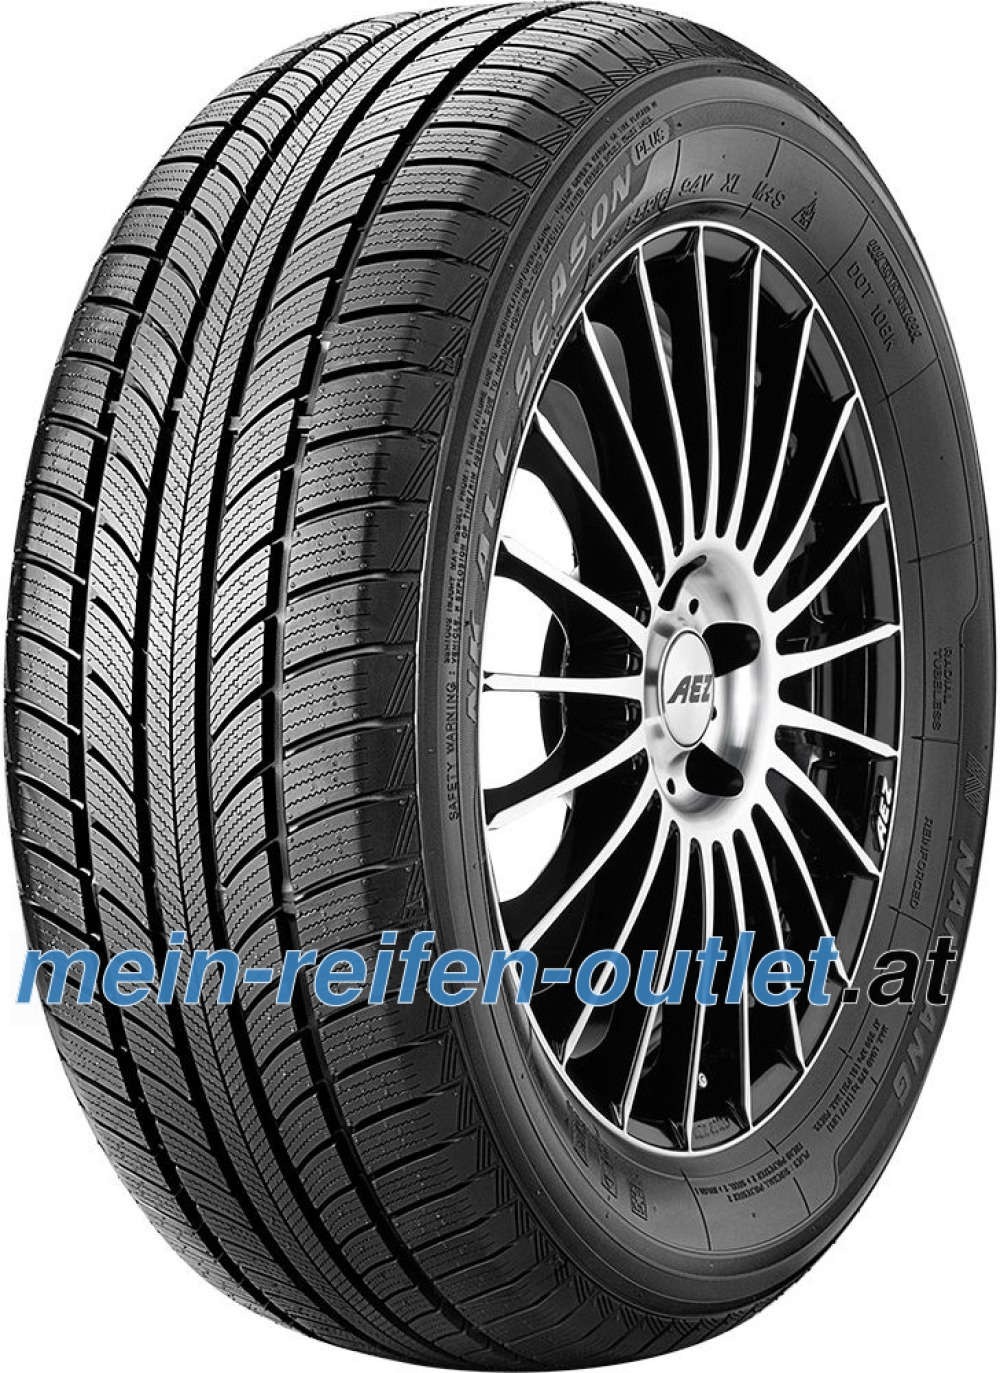 Nankang All Season Plus N-607+ ( 195/55 R15 85V )